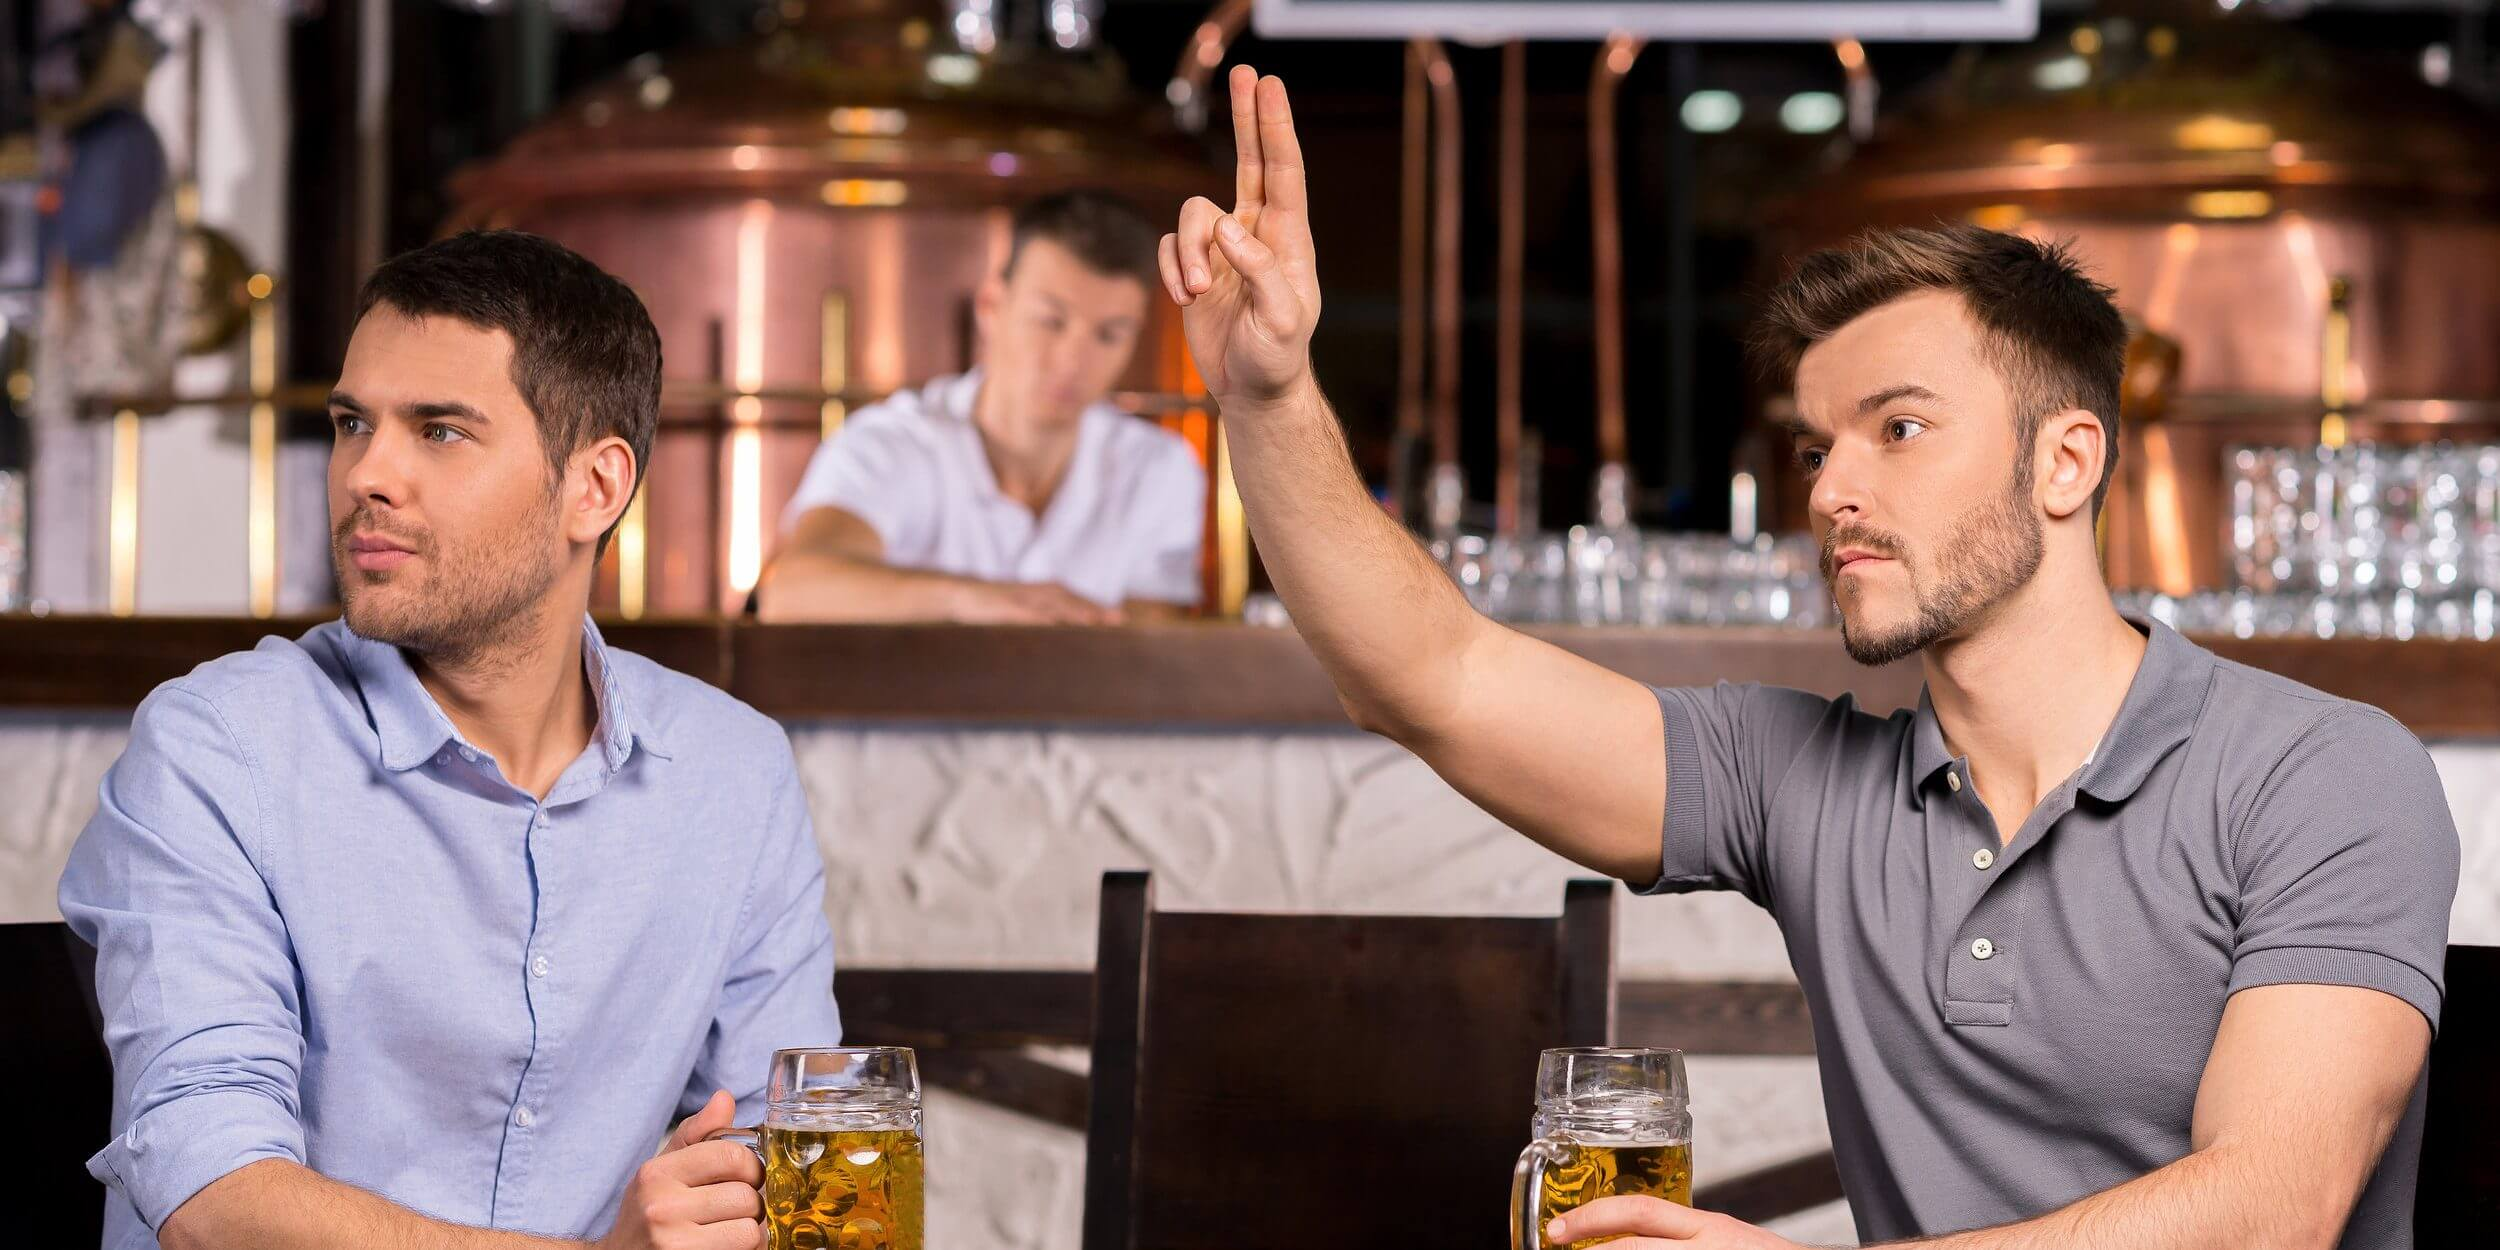 How to act ethically in a Perth club